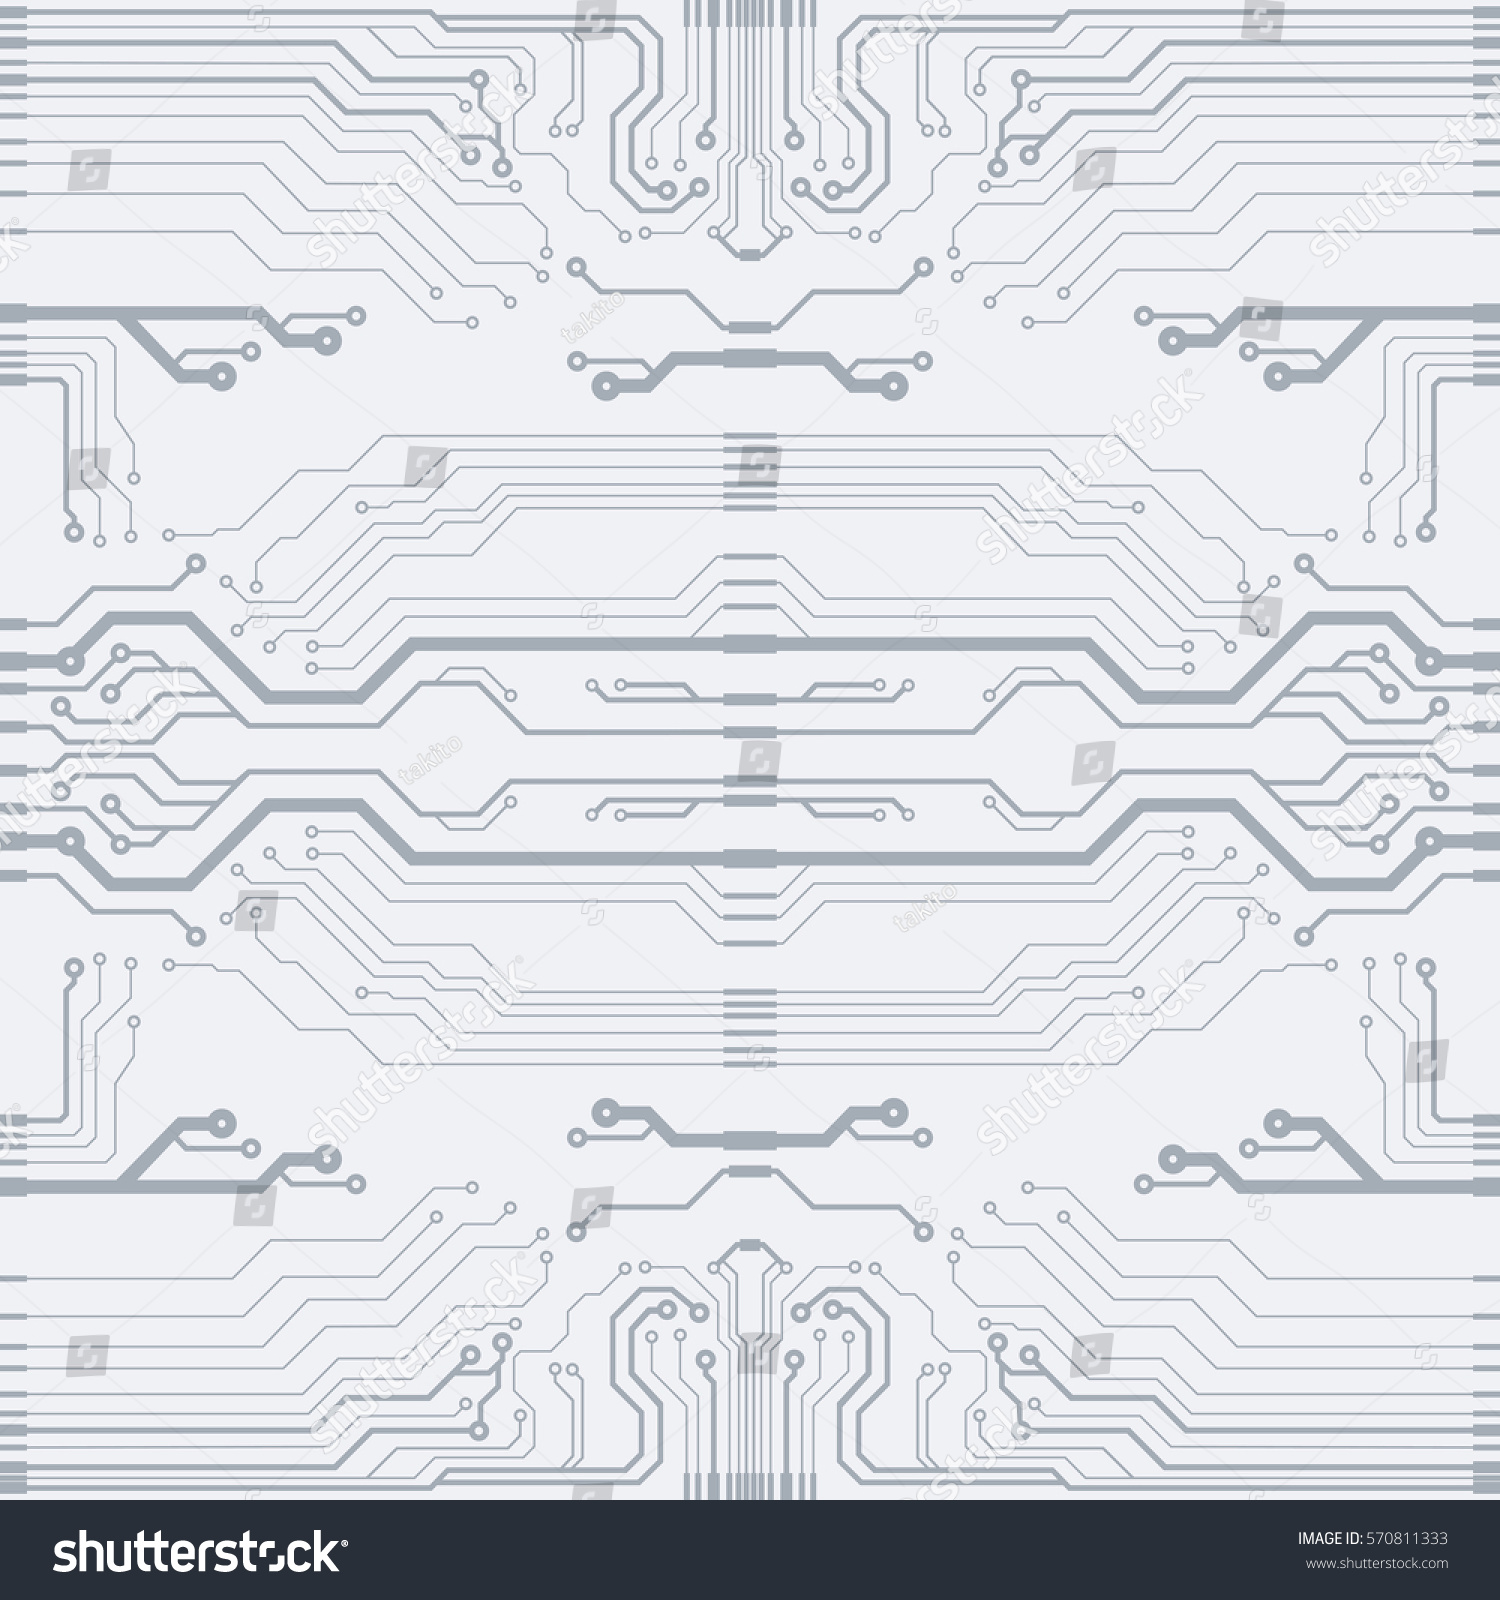 Vector Gray Circuit Board Illustration Eps Stock Royalty Flat